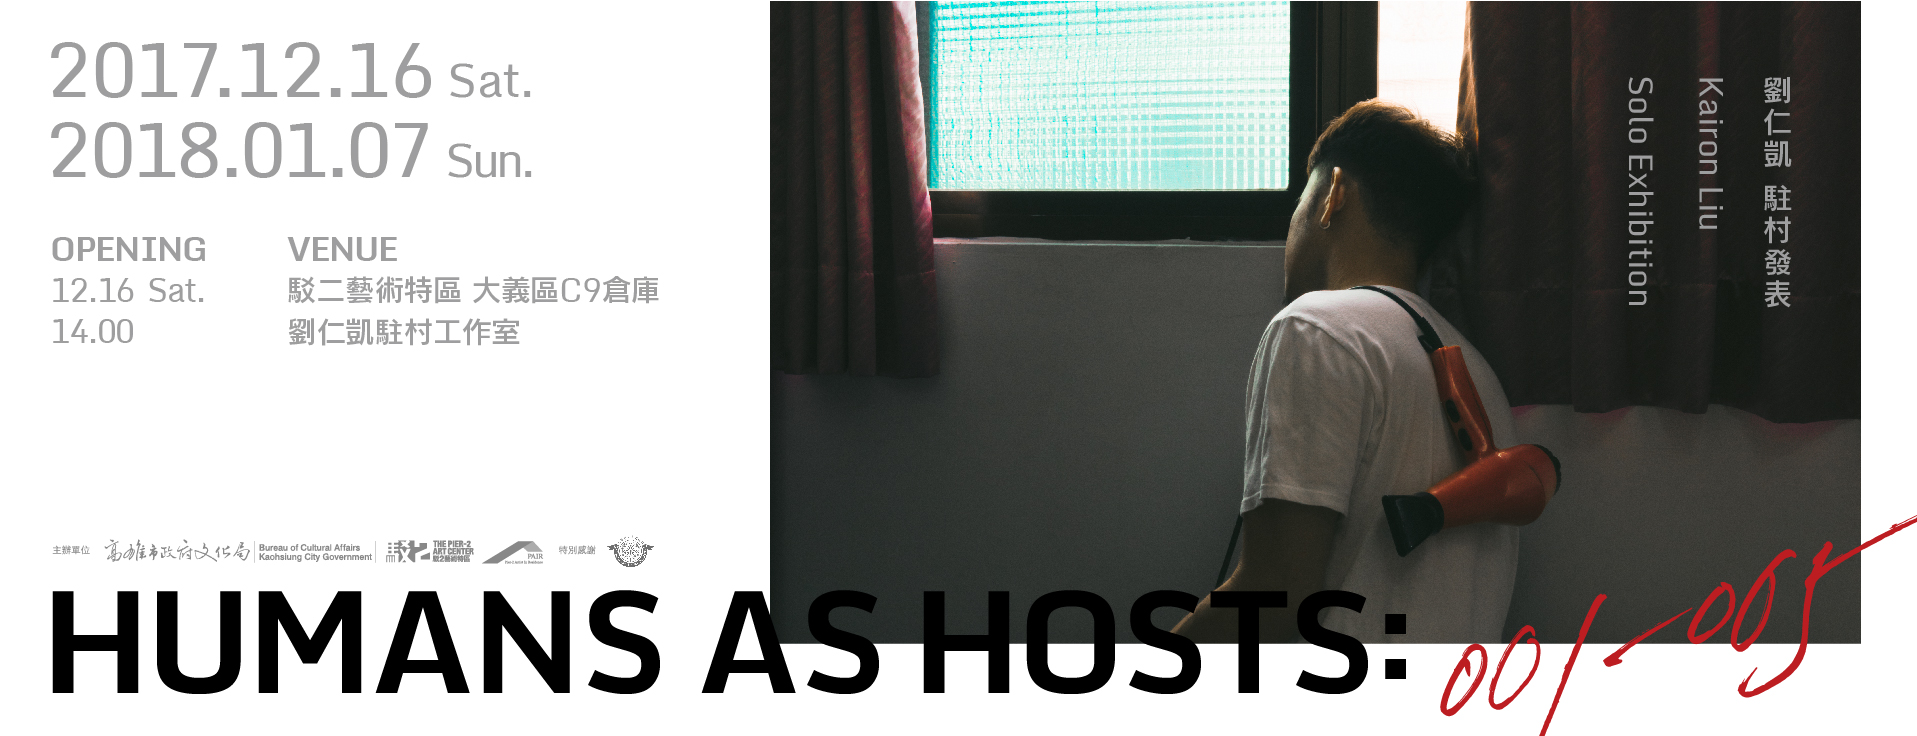 「Humans As Hosts: 001-005」